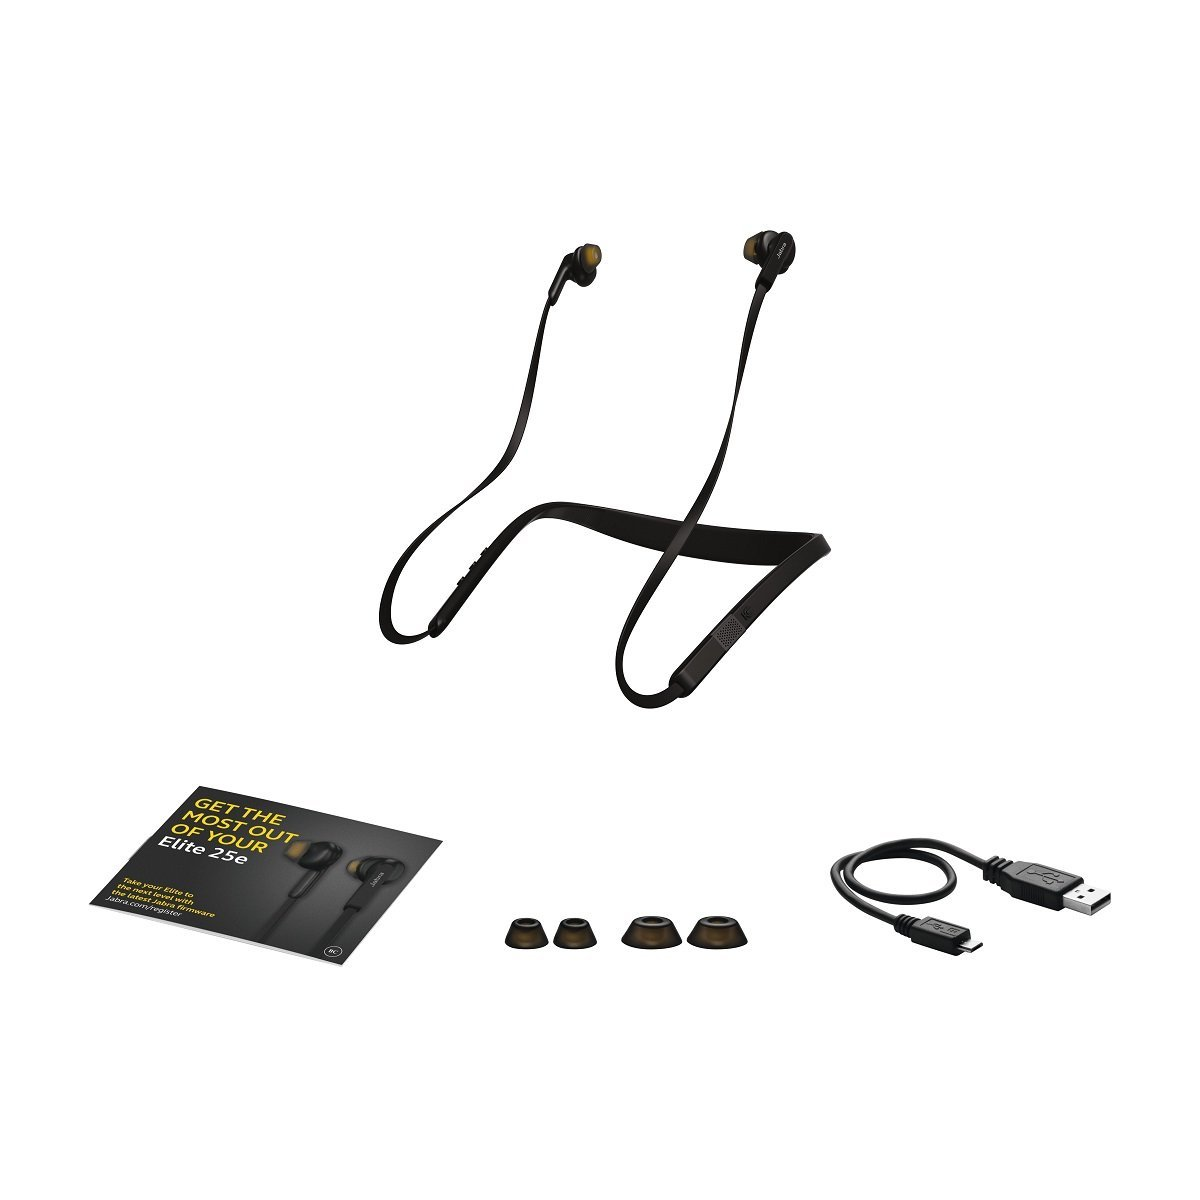 Jabra Elite 25e Wireless Bluetooth headphones